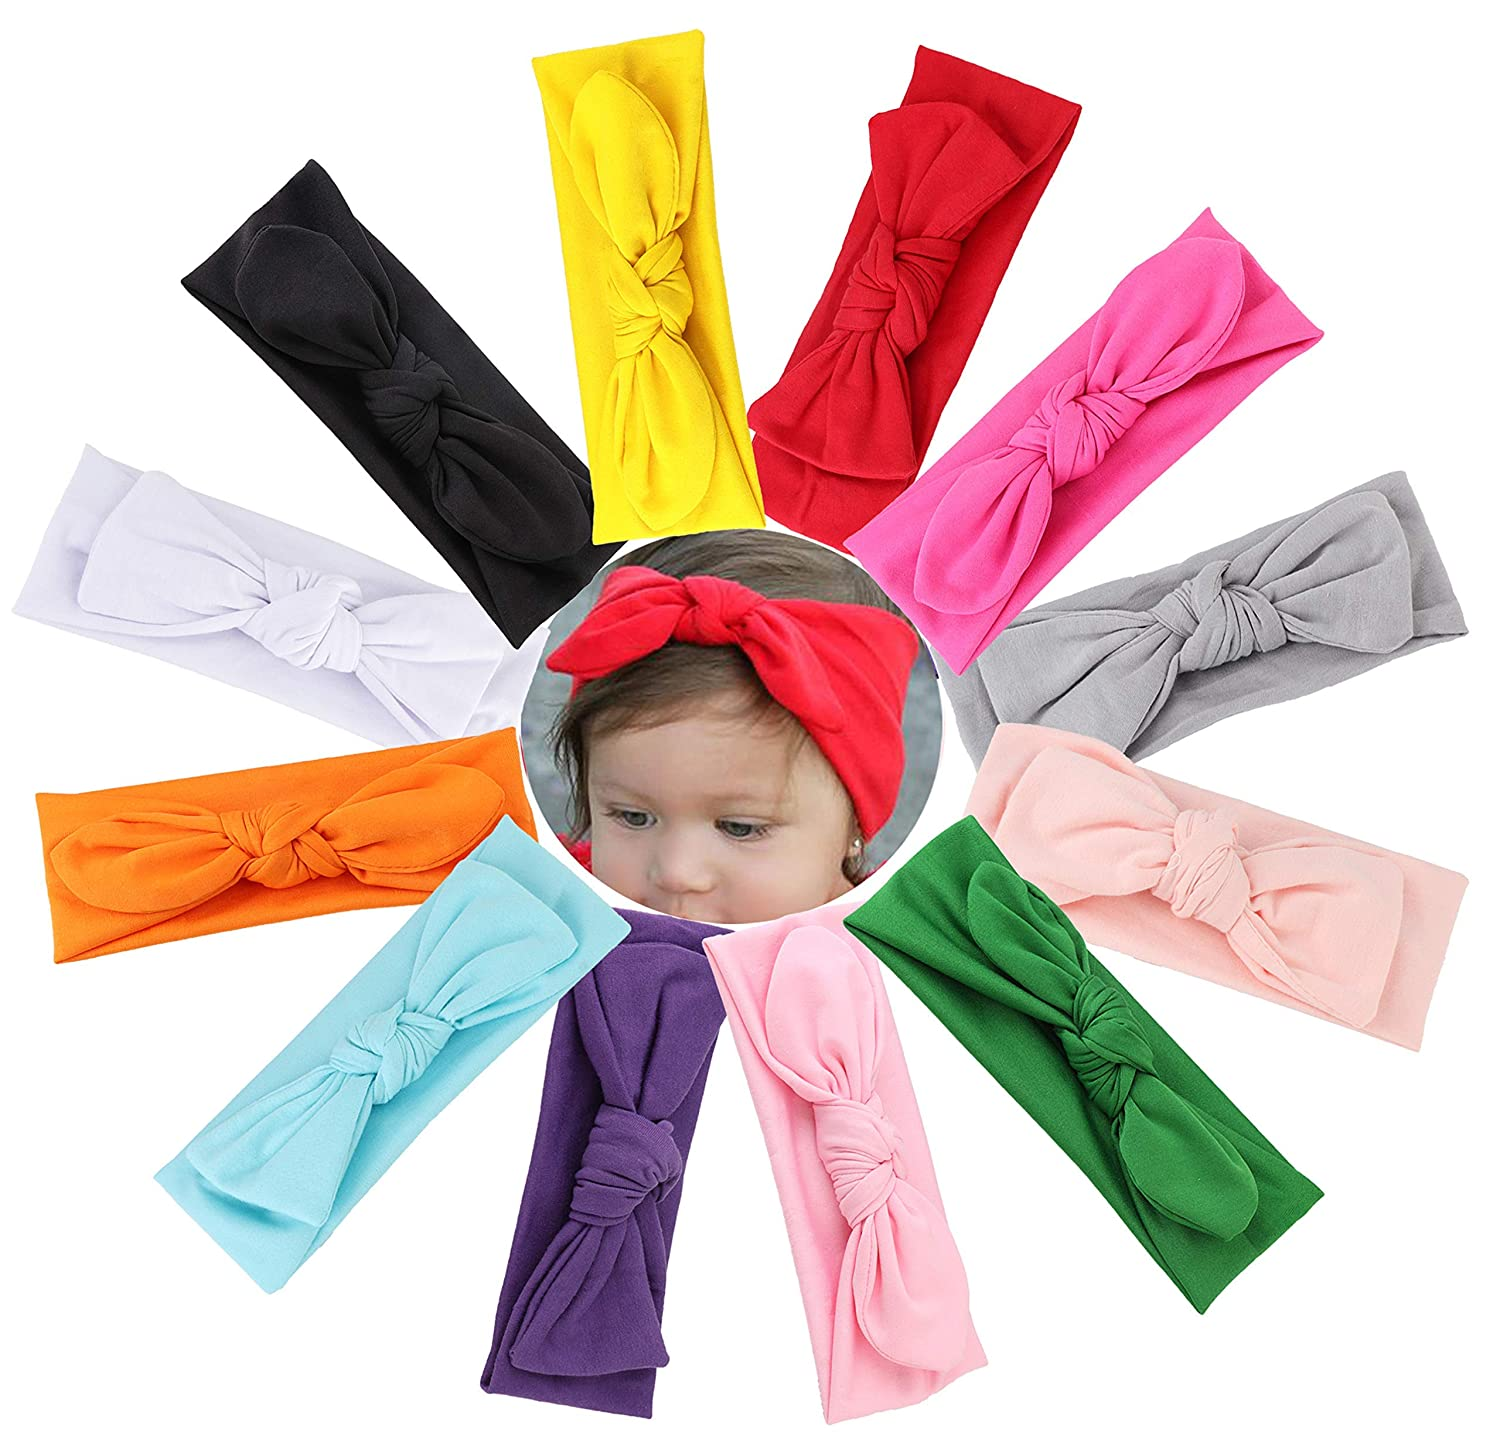 Milacolato 12Pcs Baby Headbands Knotted Turban for Newborn Infant Toddler Boys Girls Hair Wraps Accessories